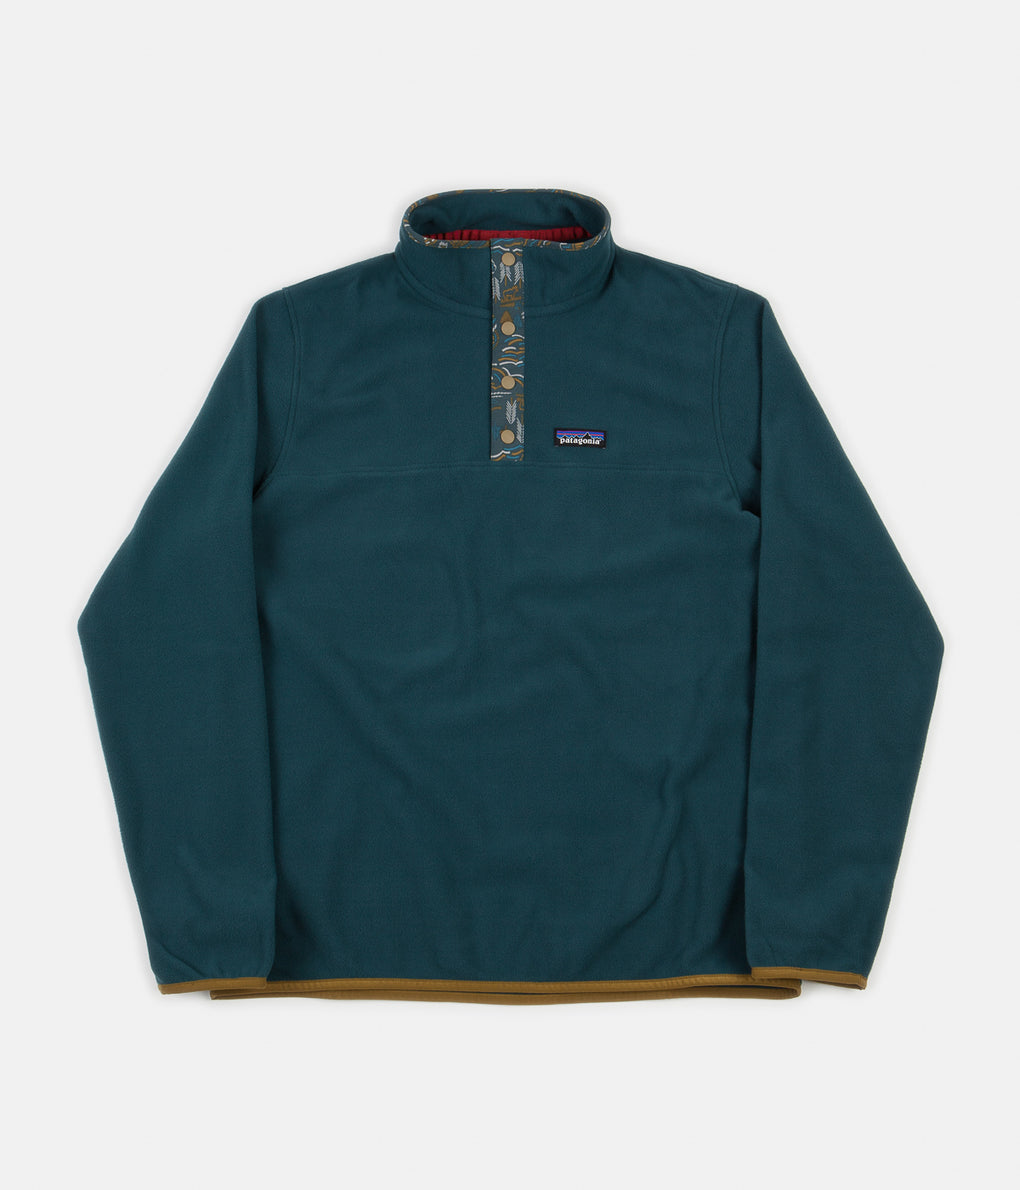 Patagonia Micro D Snap-T Pullover Fleece - Piki Green